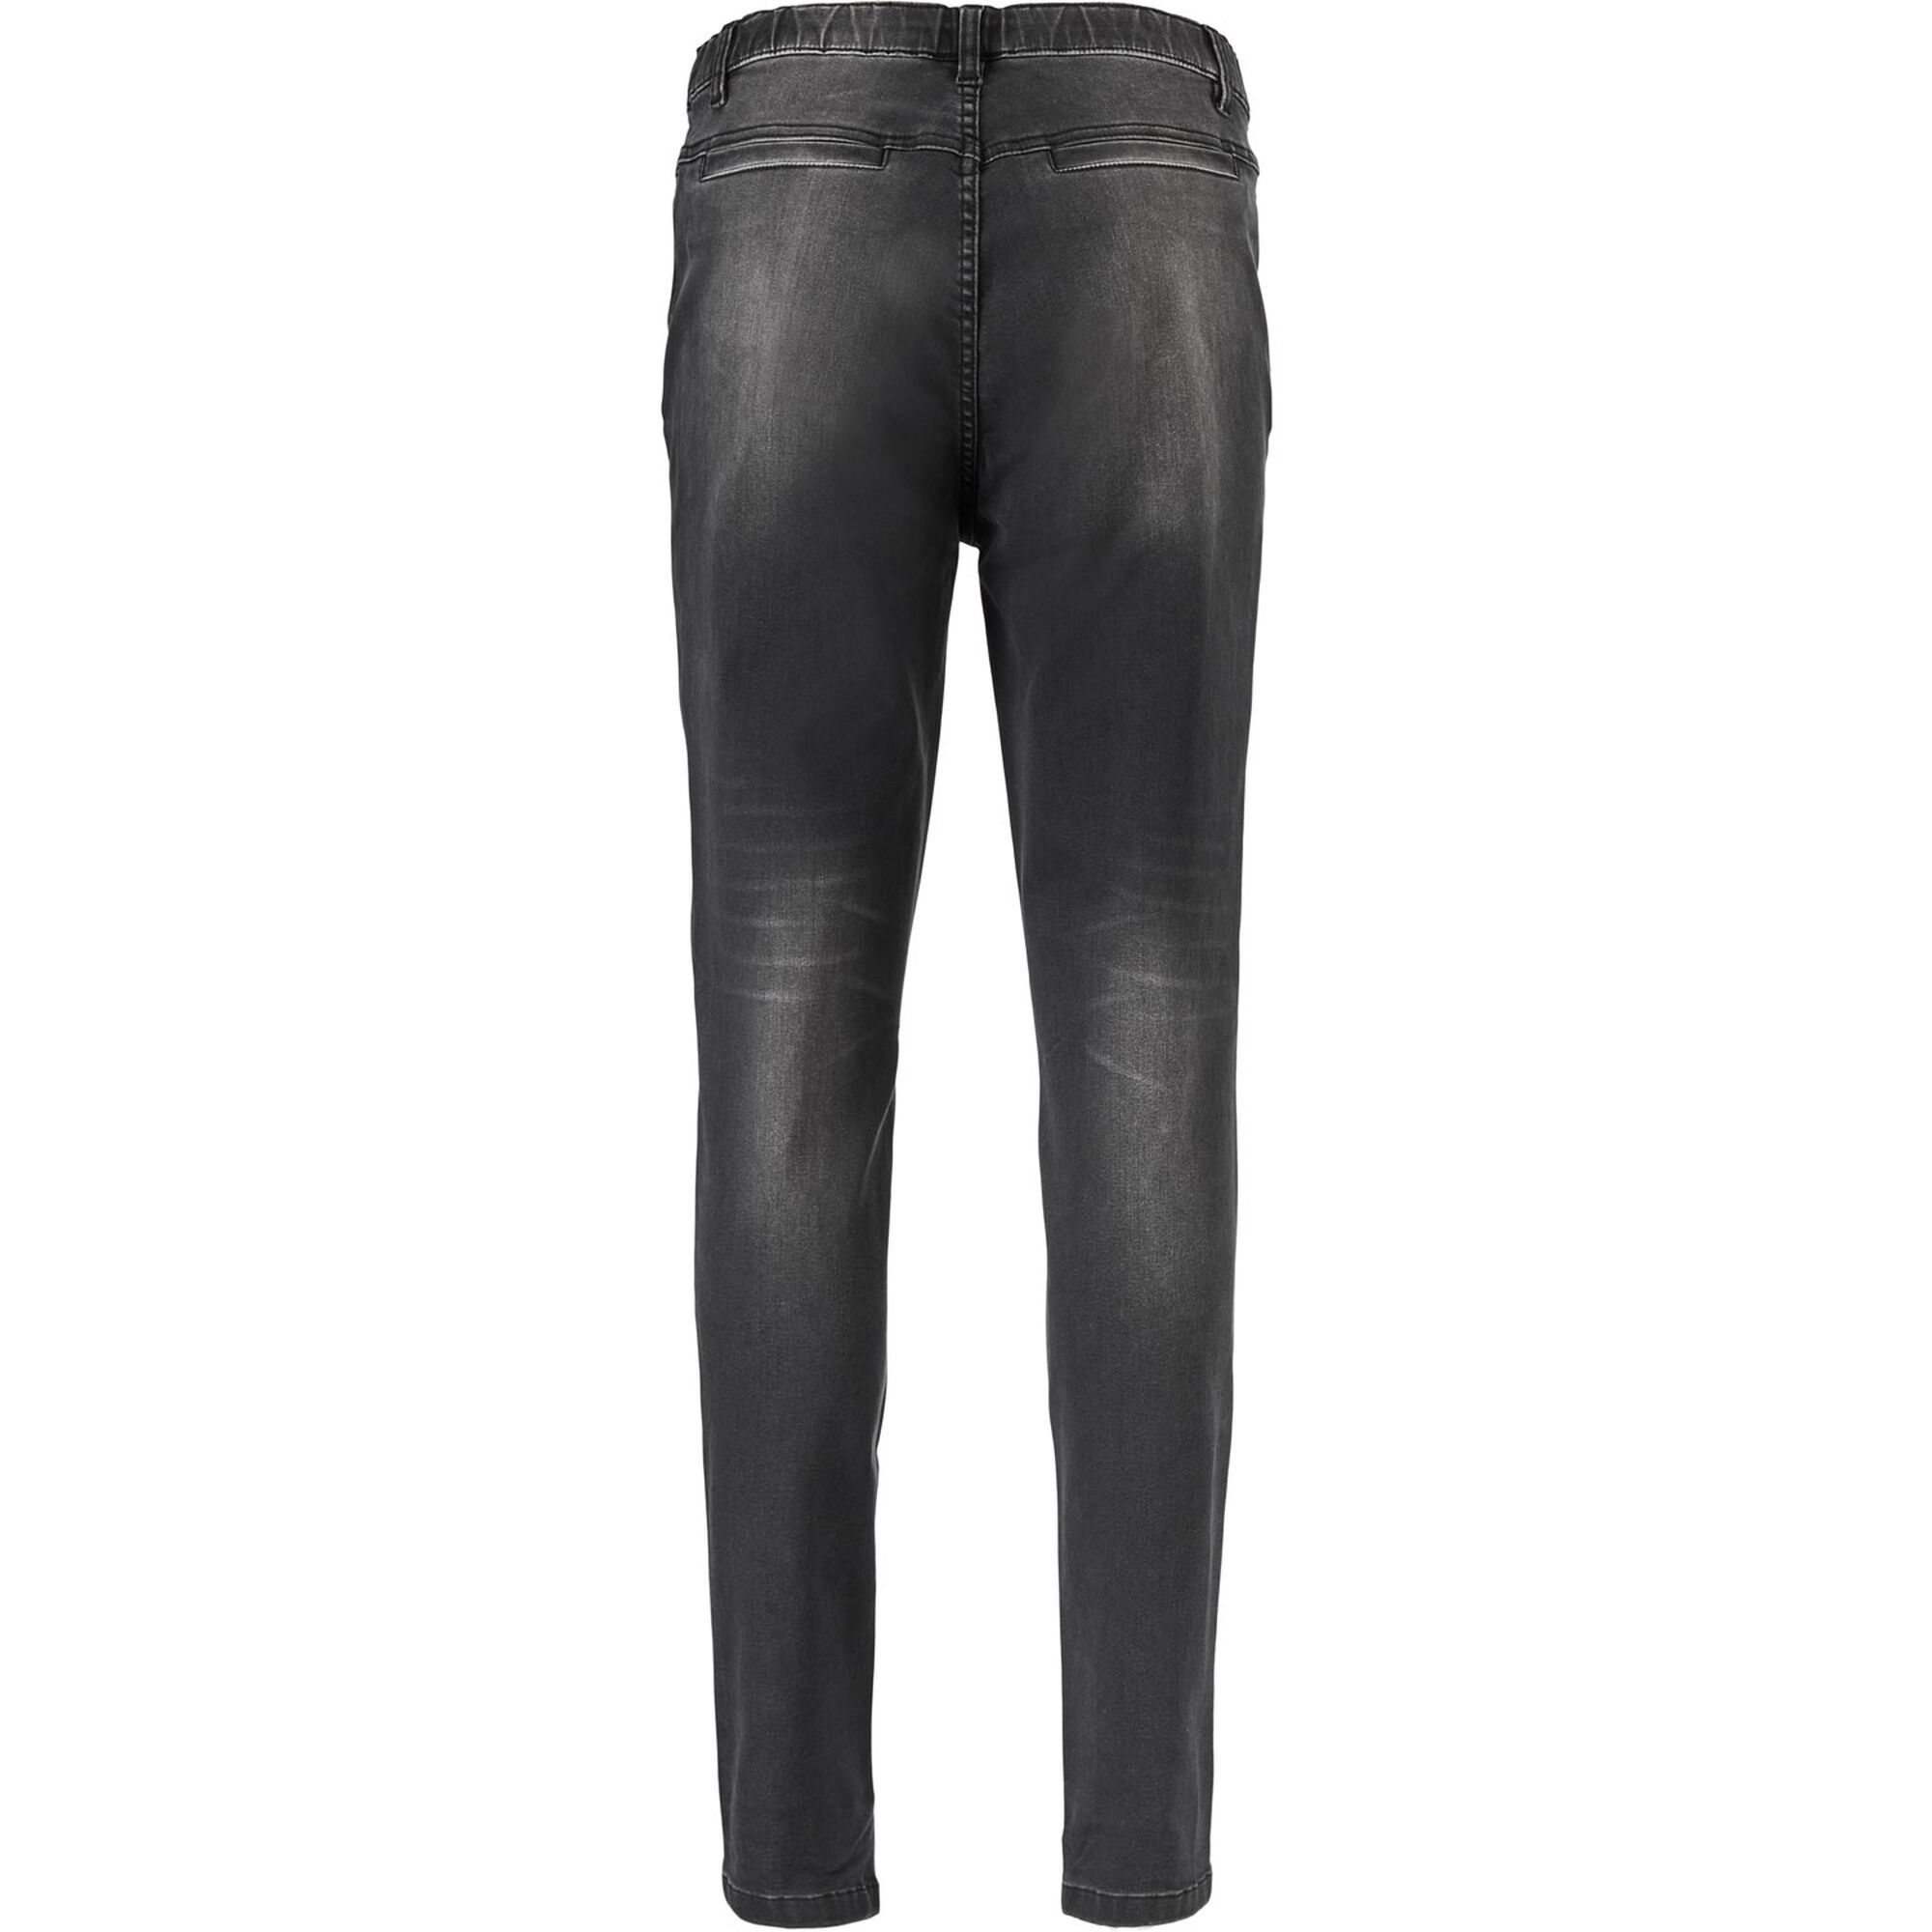 PENNY TROUSERS LONG, Black, hi-res